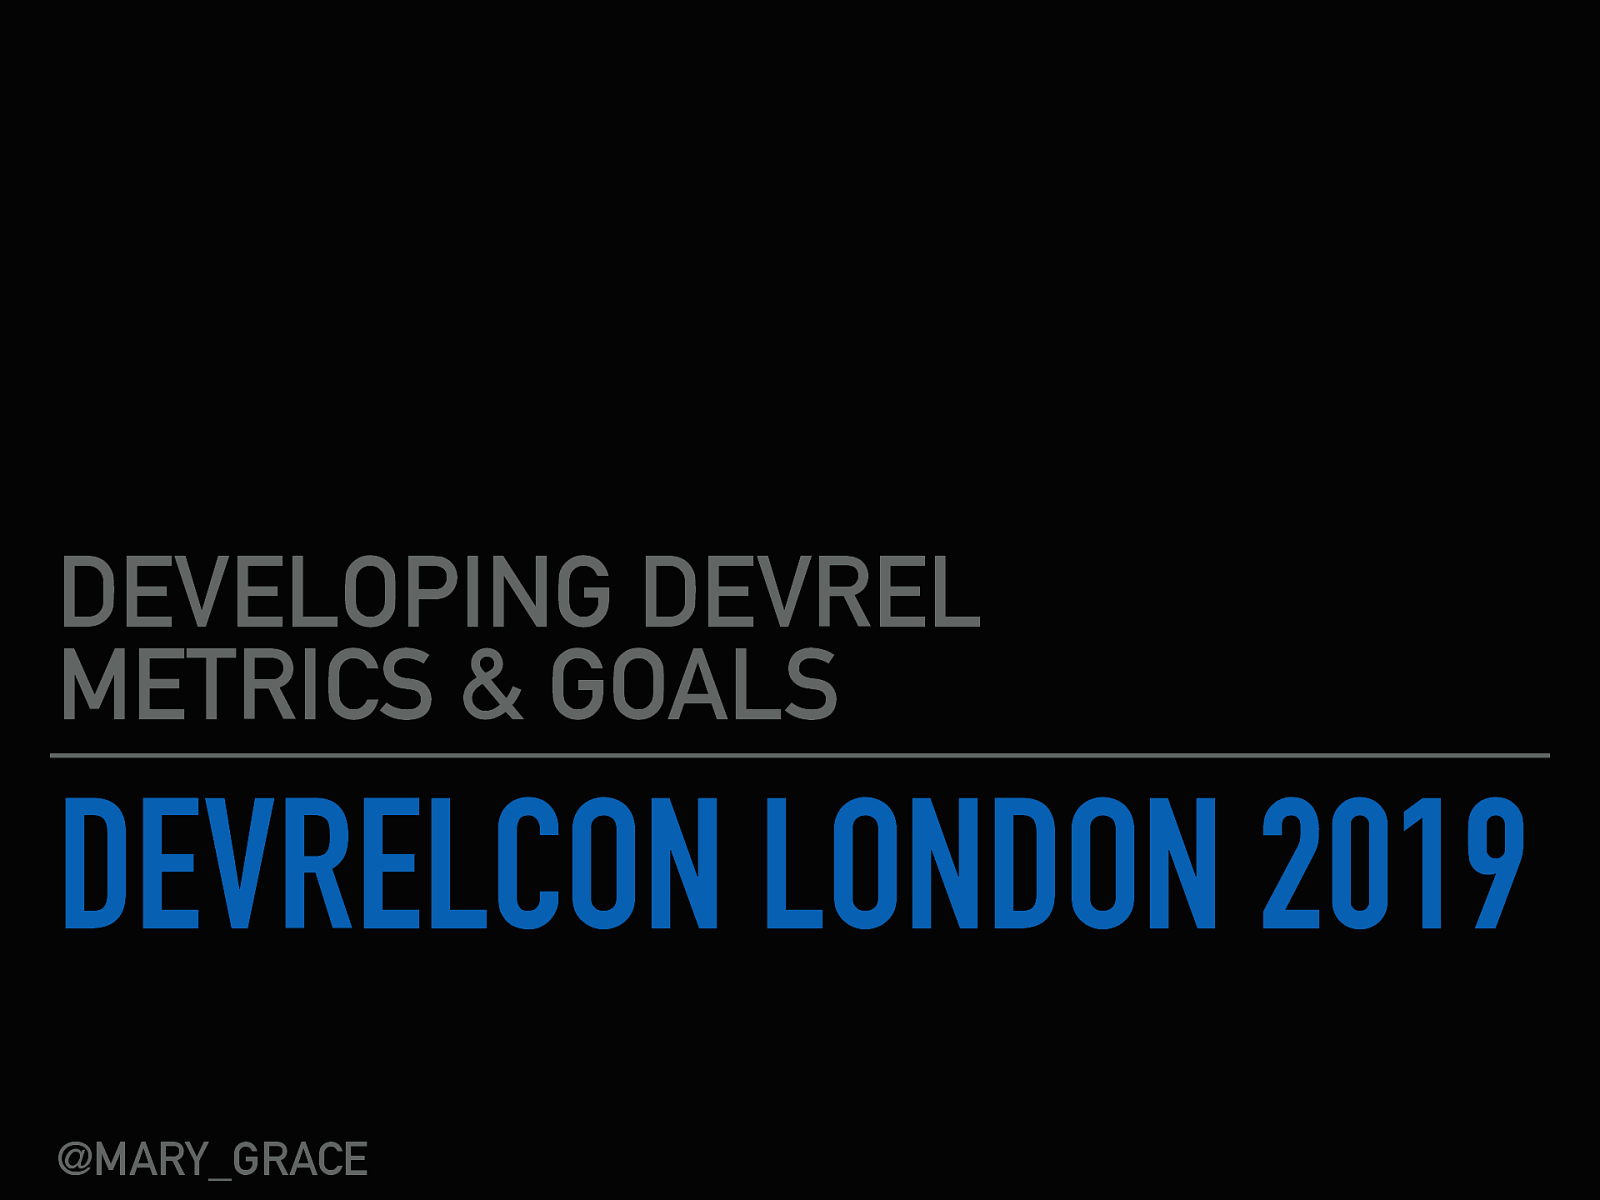 Workshop: Developing DevRel Metrics and Goals